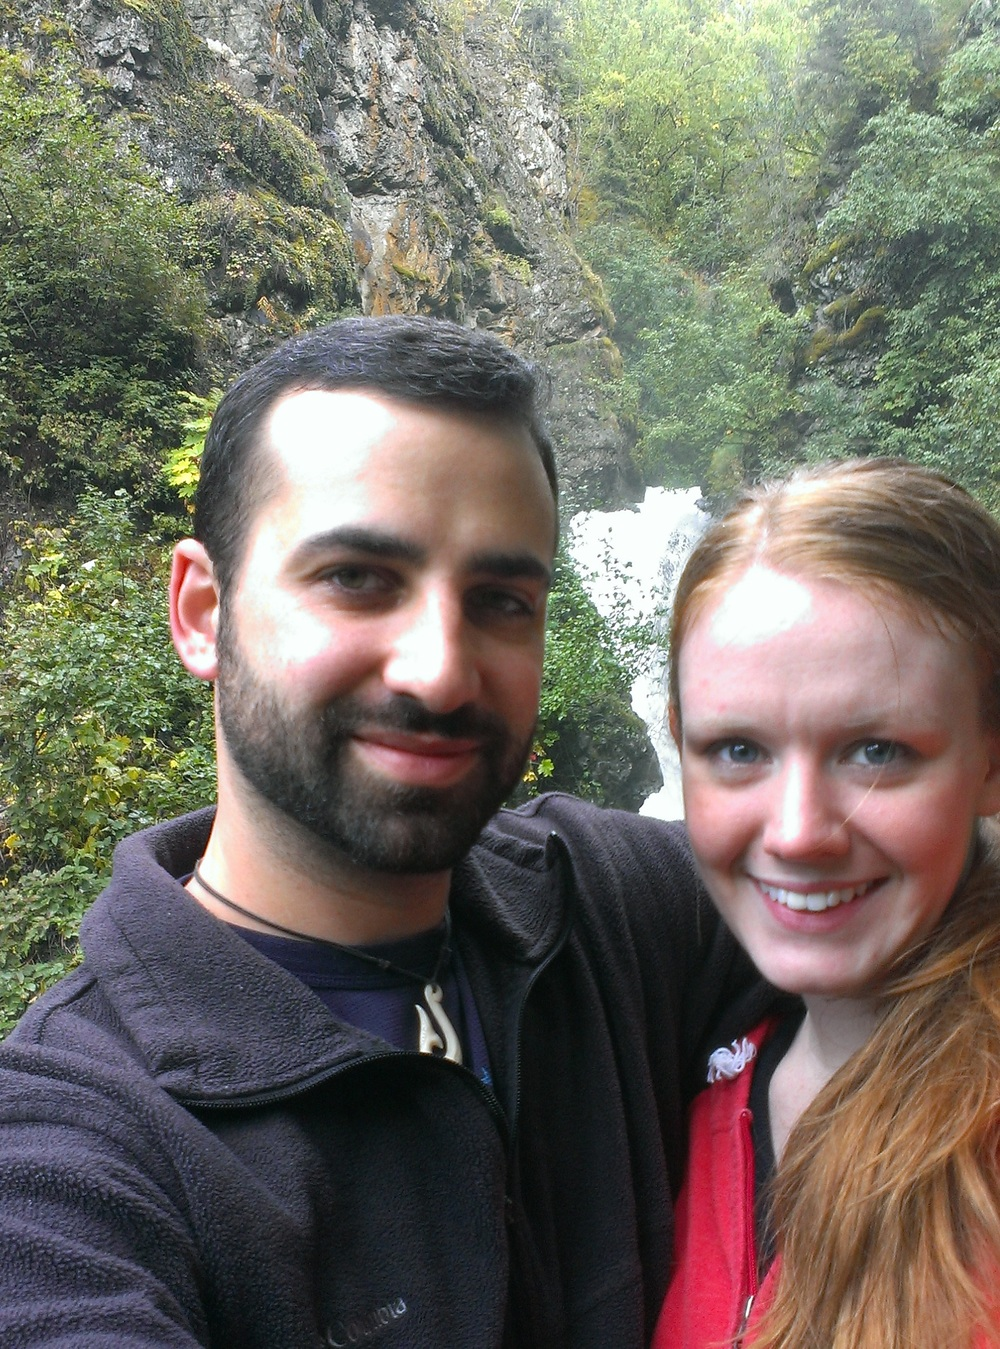 Gavin and his fiance Sydney Taylor hiking in Alaska.